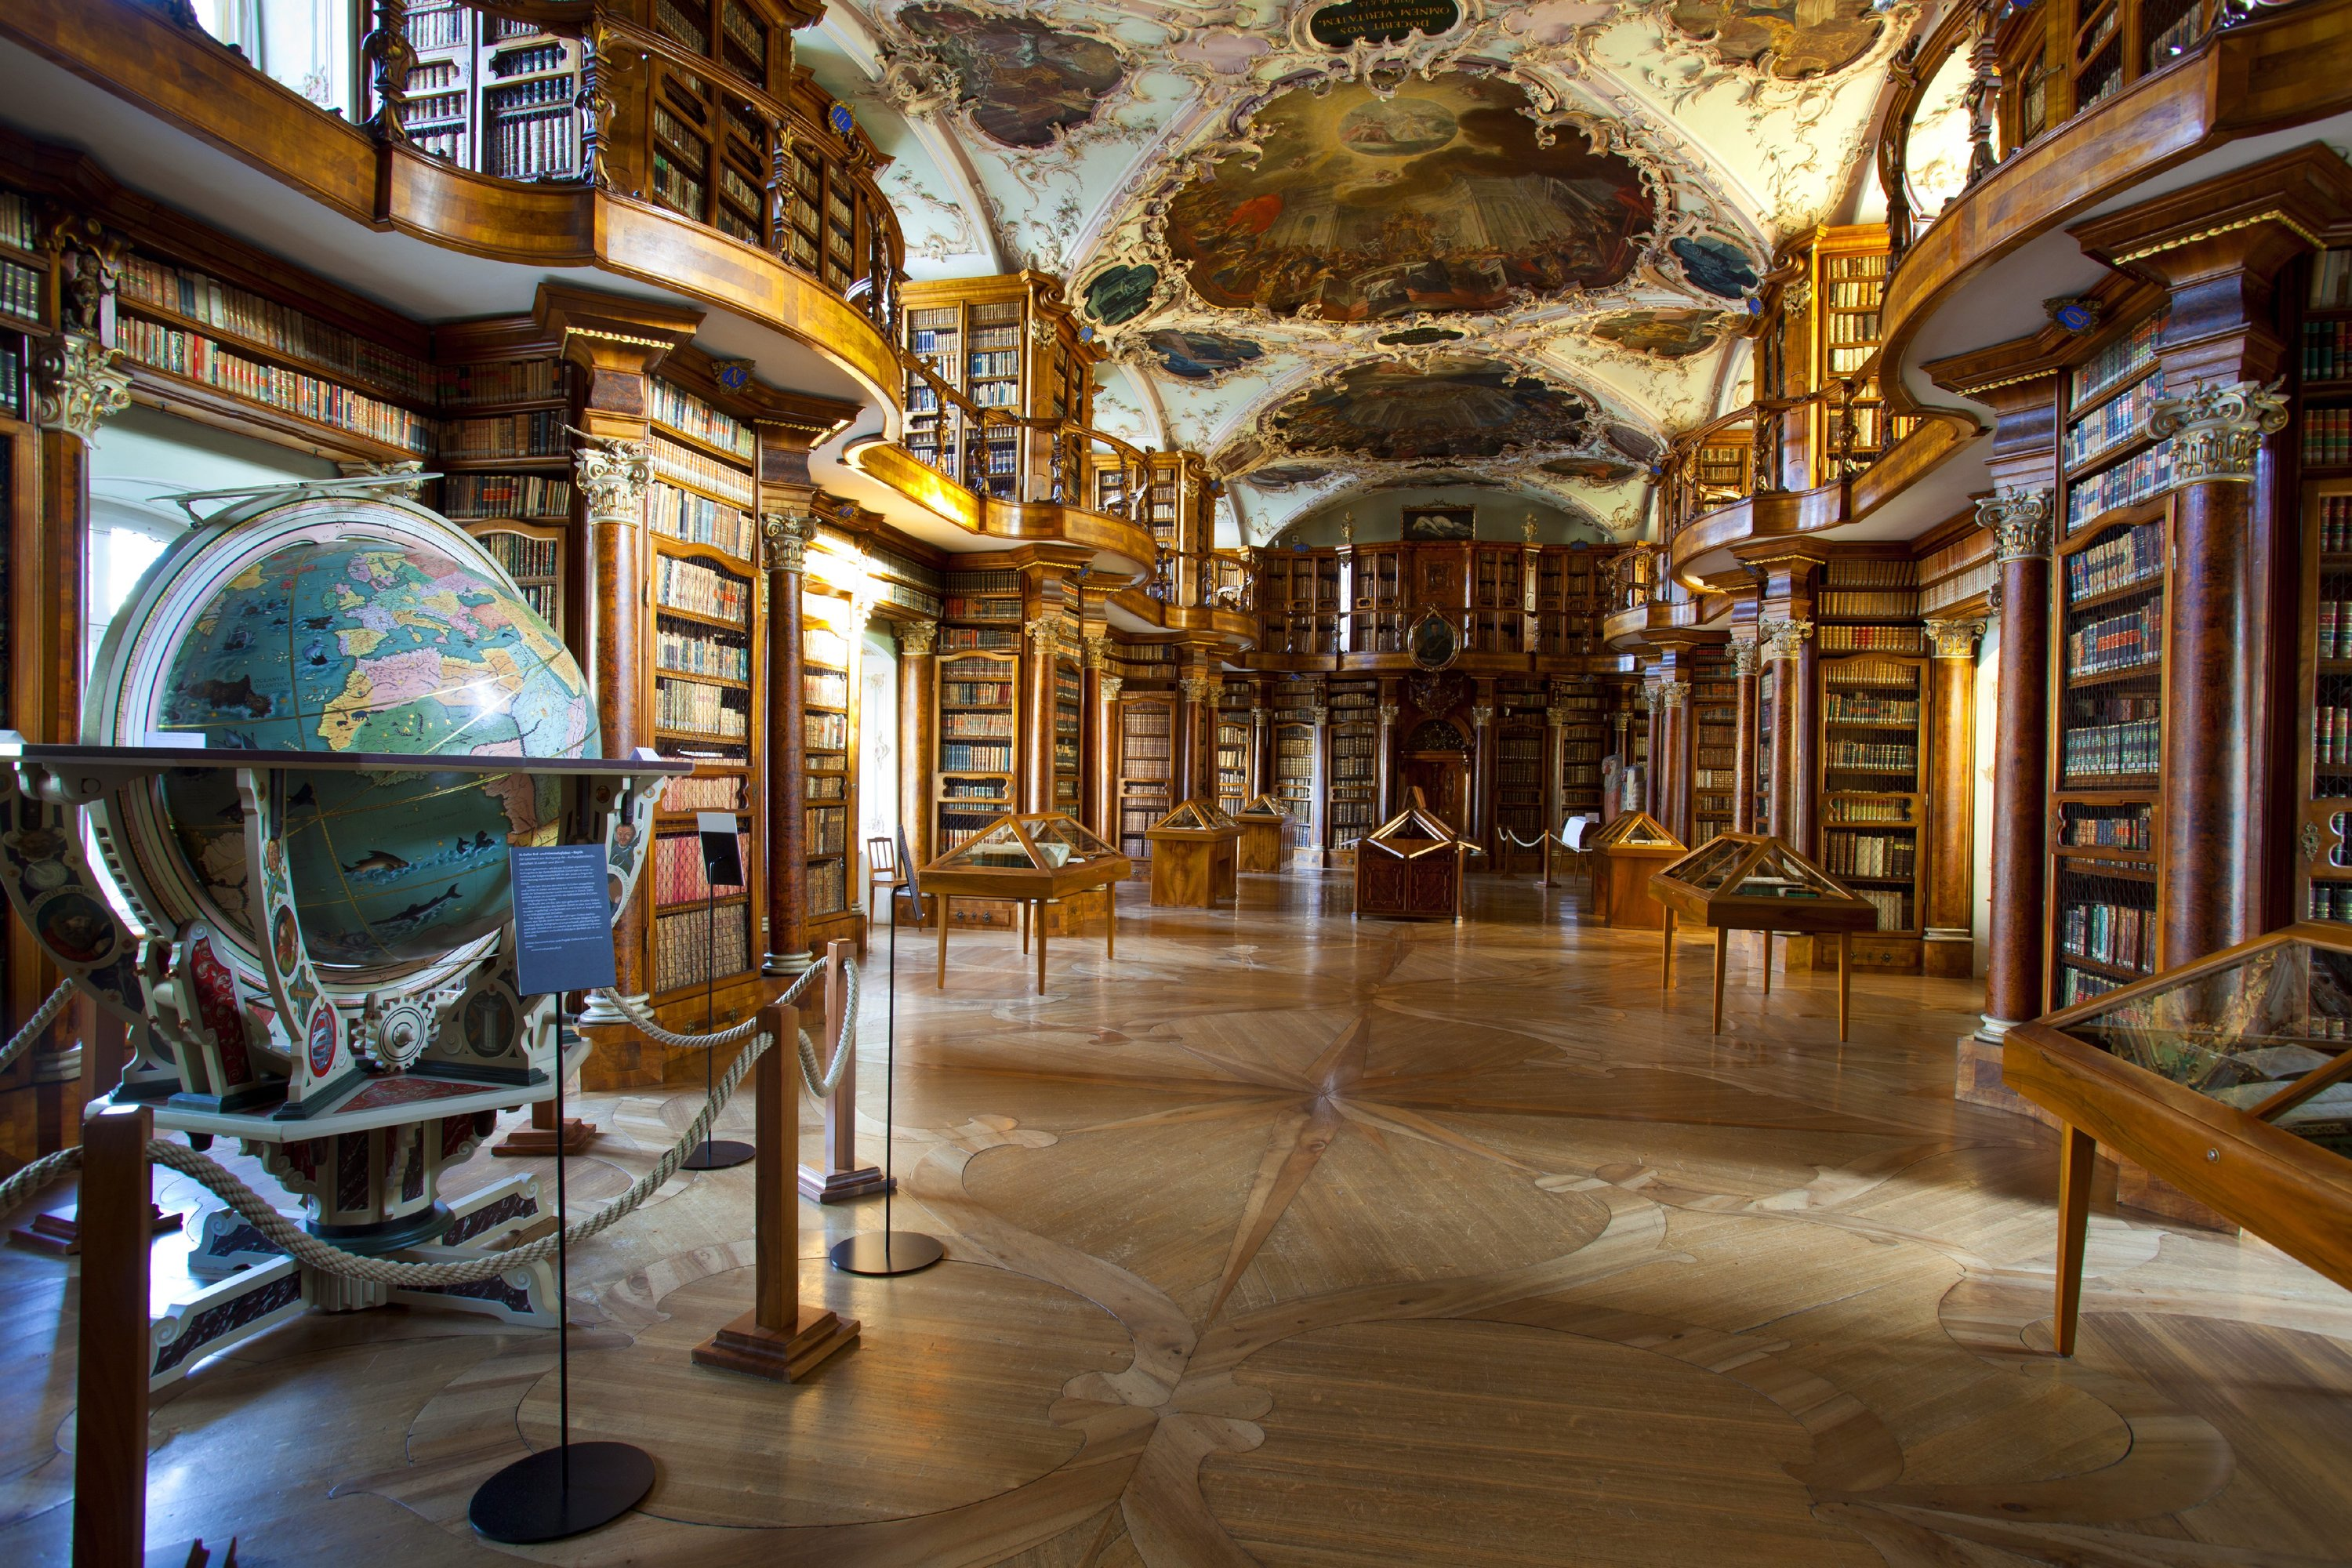 The Abbey Library of St Gallen